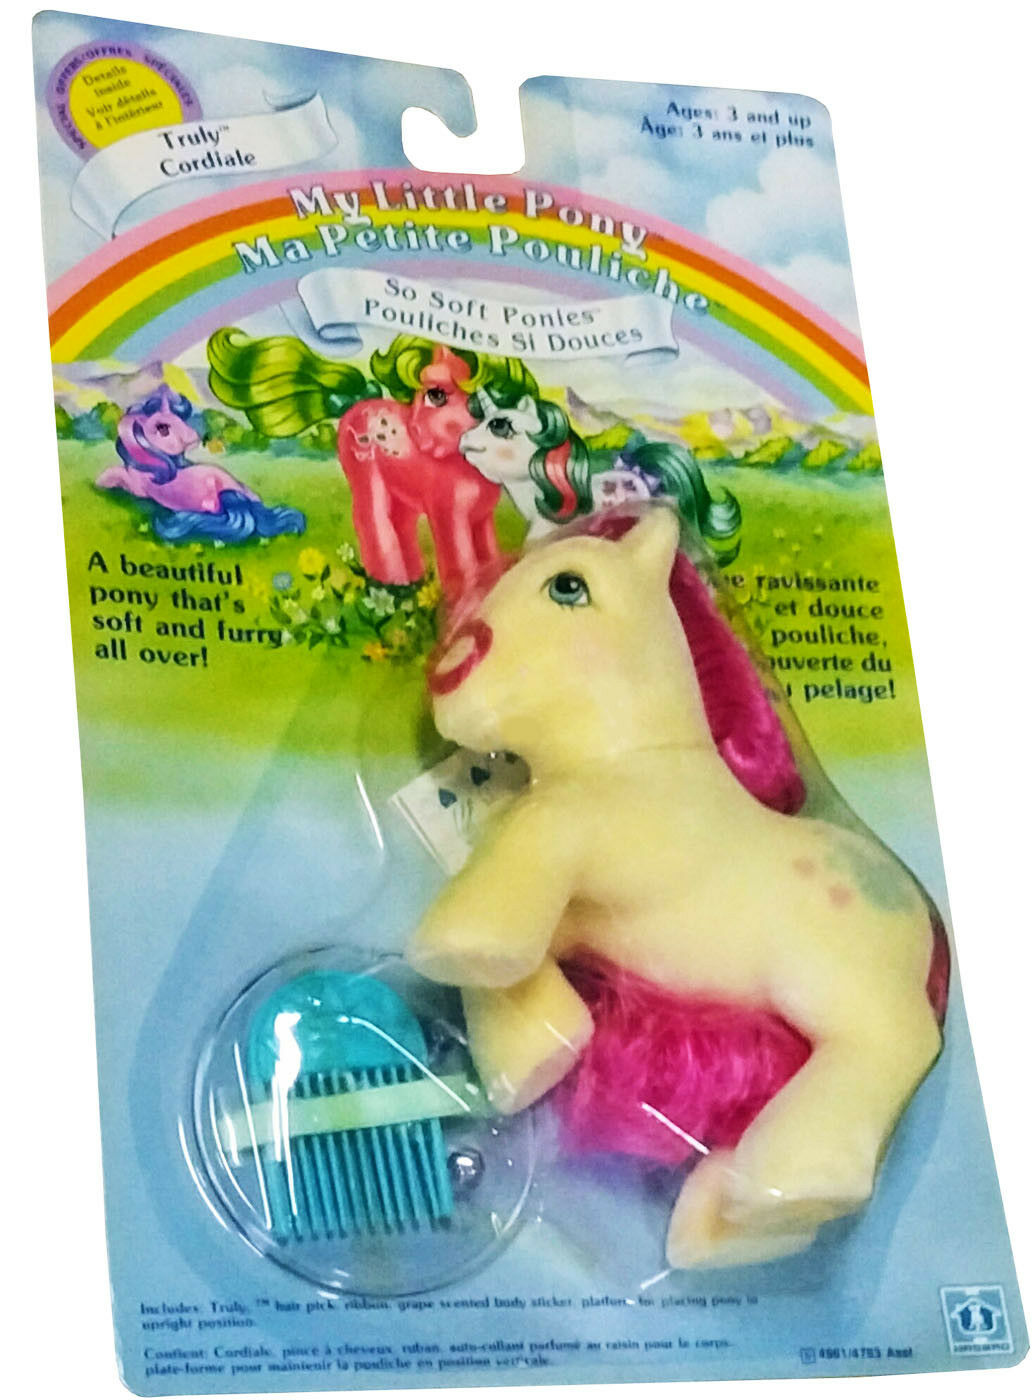 My Little Pony™ So Soft Ponies - Truly - Vintage 1986 - Mint on Sealed Card